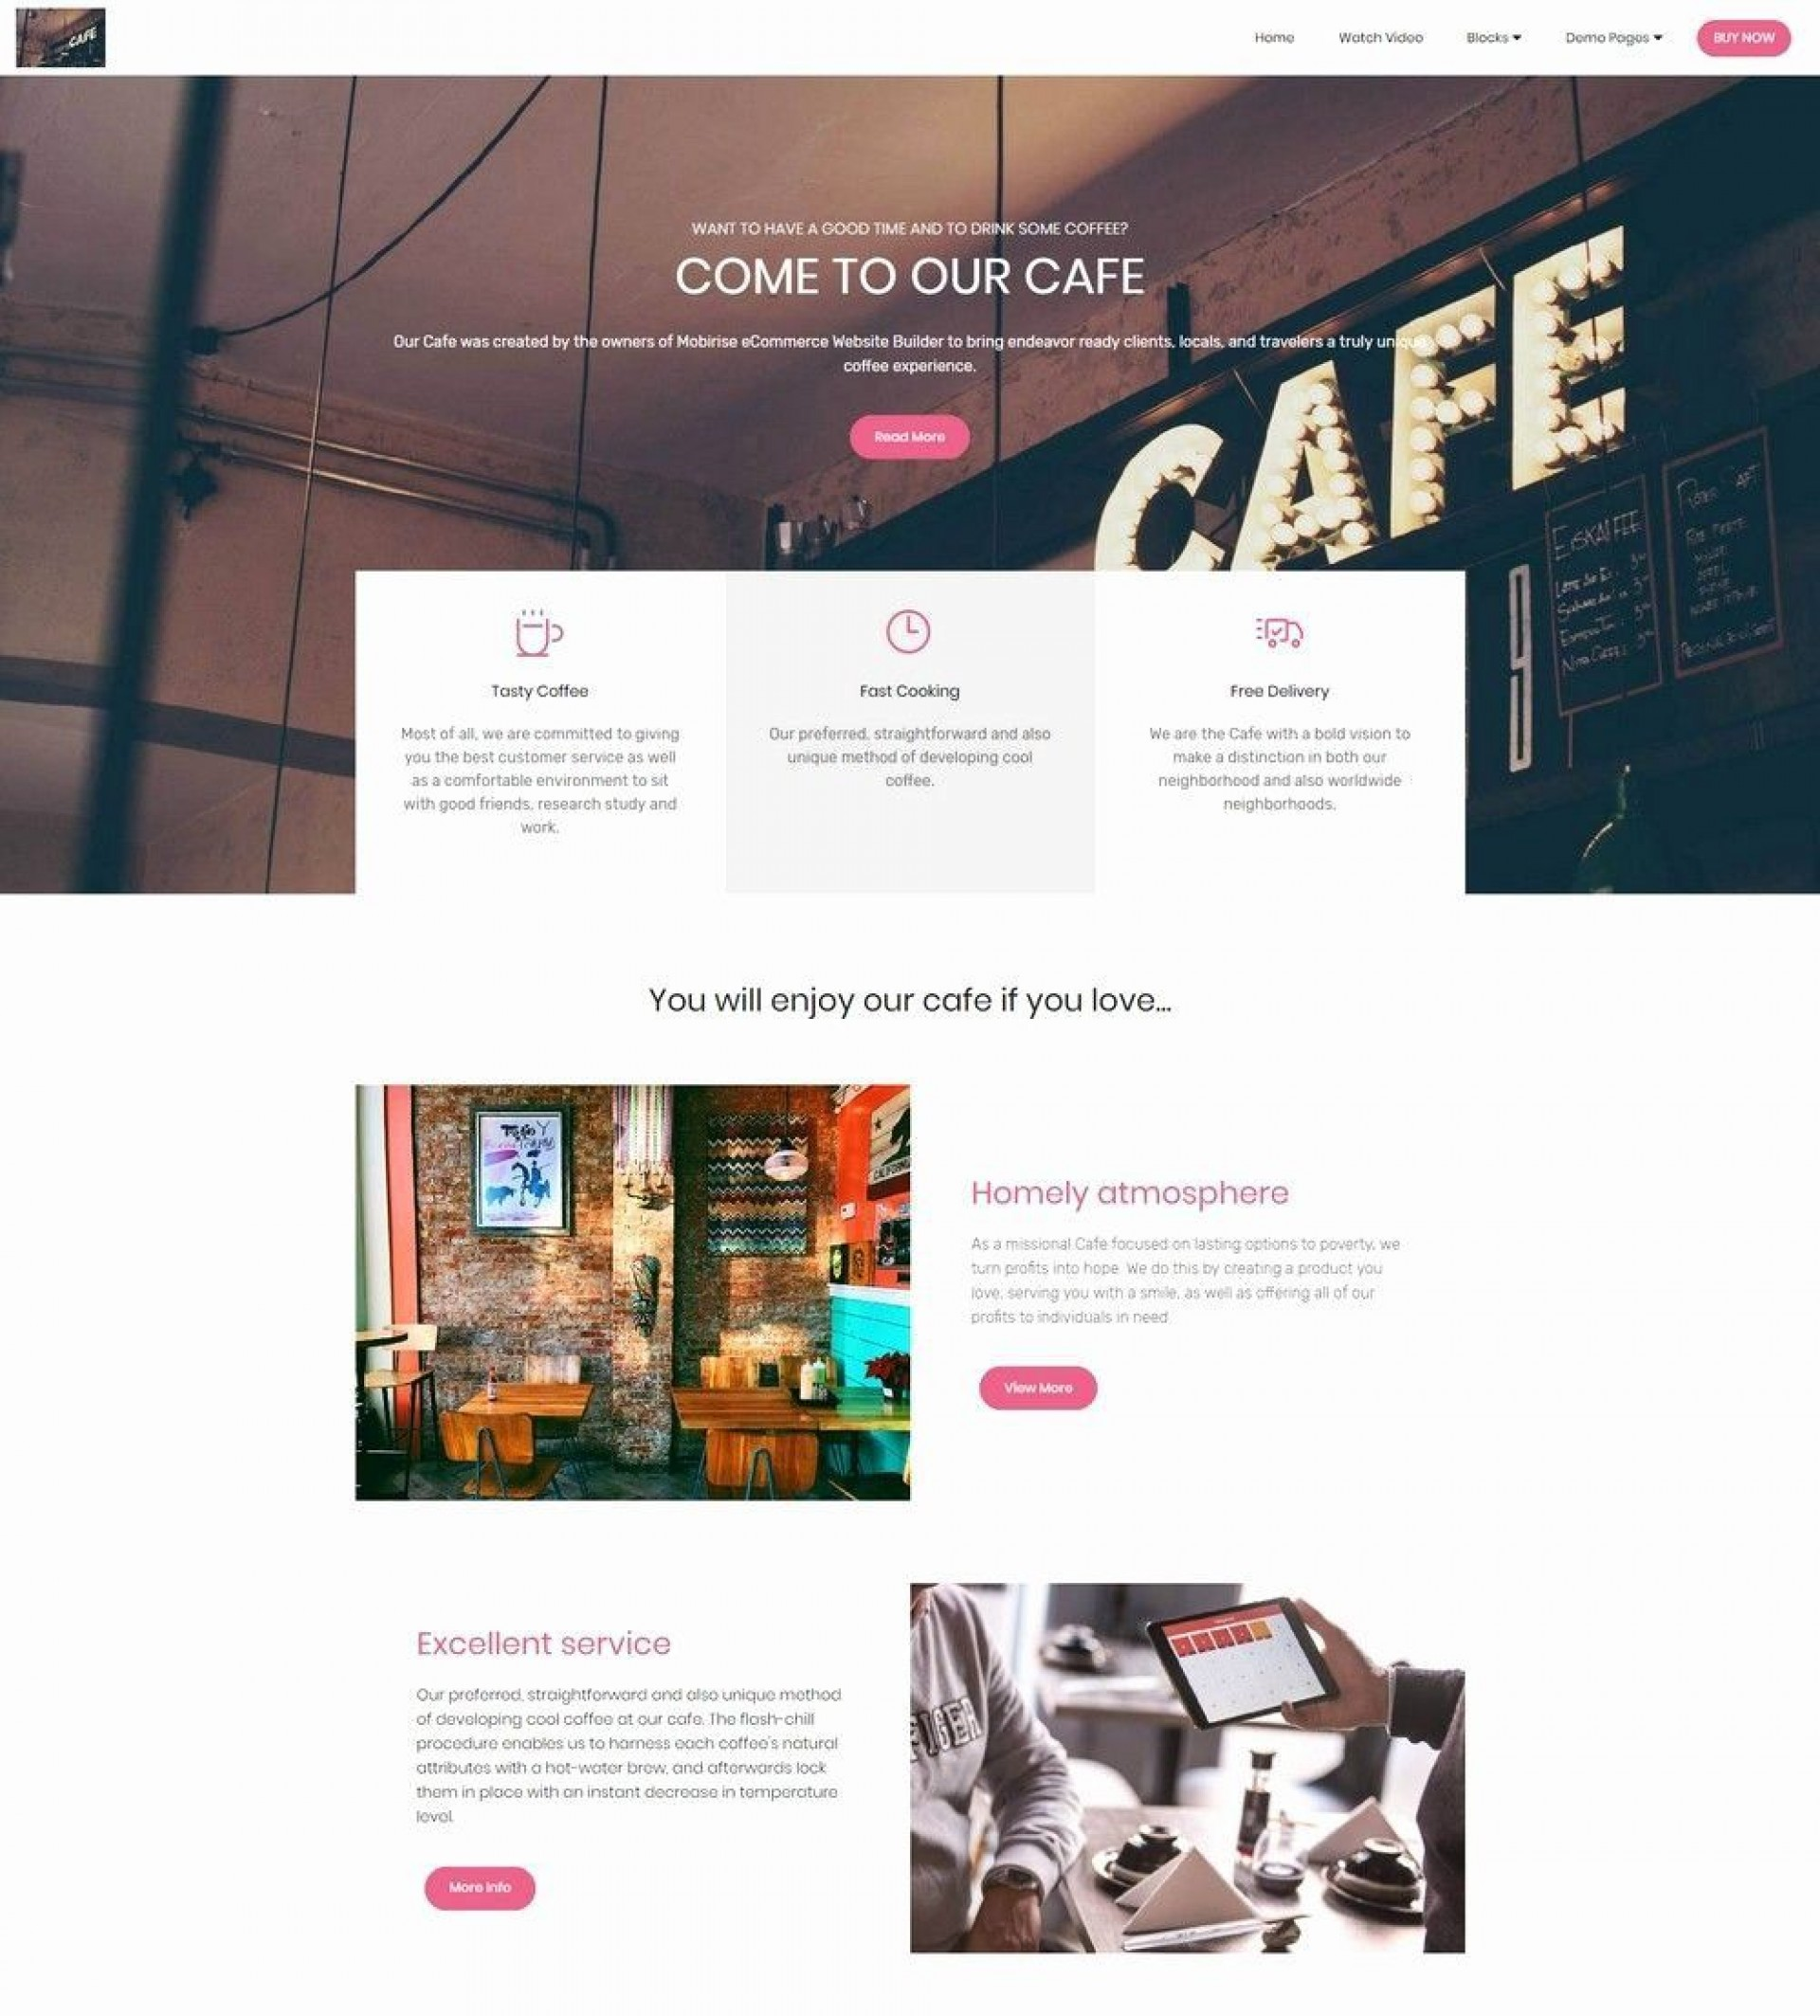 003 Awful Free Flash Website Template High Resolution  Templates 3d Download Intro1920